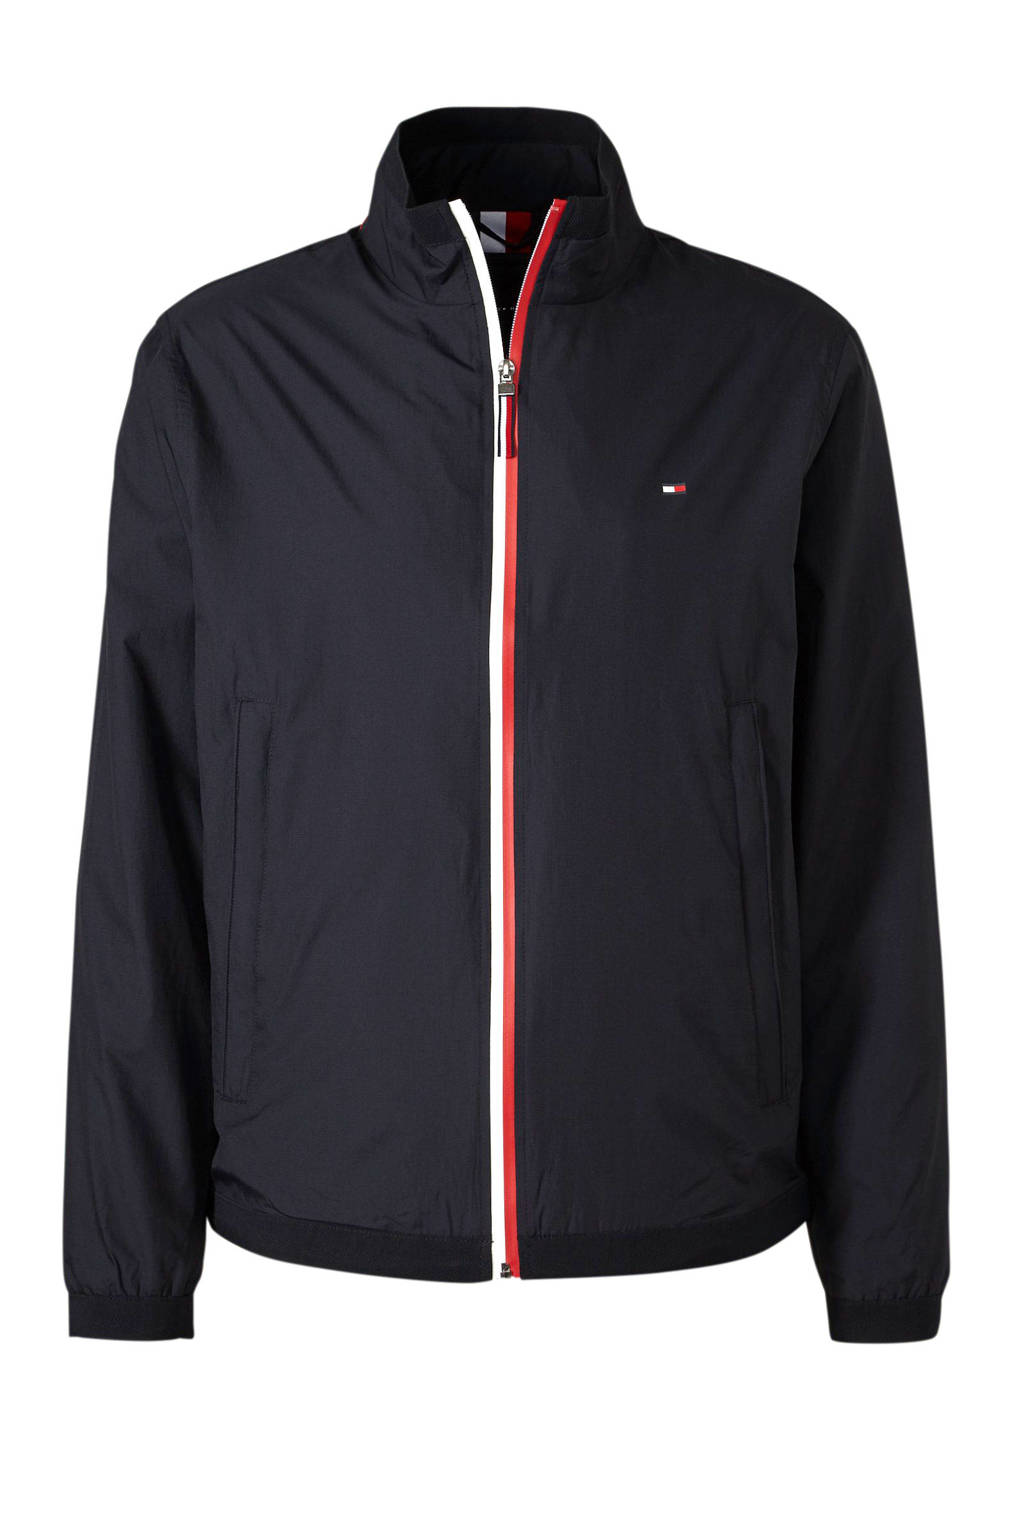 Tommy Hilfiger jas met borduursels, Donkerblauw/rood/wit